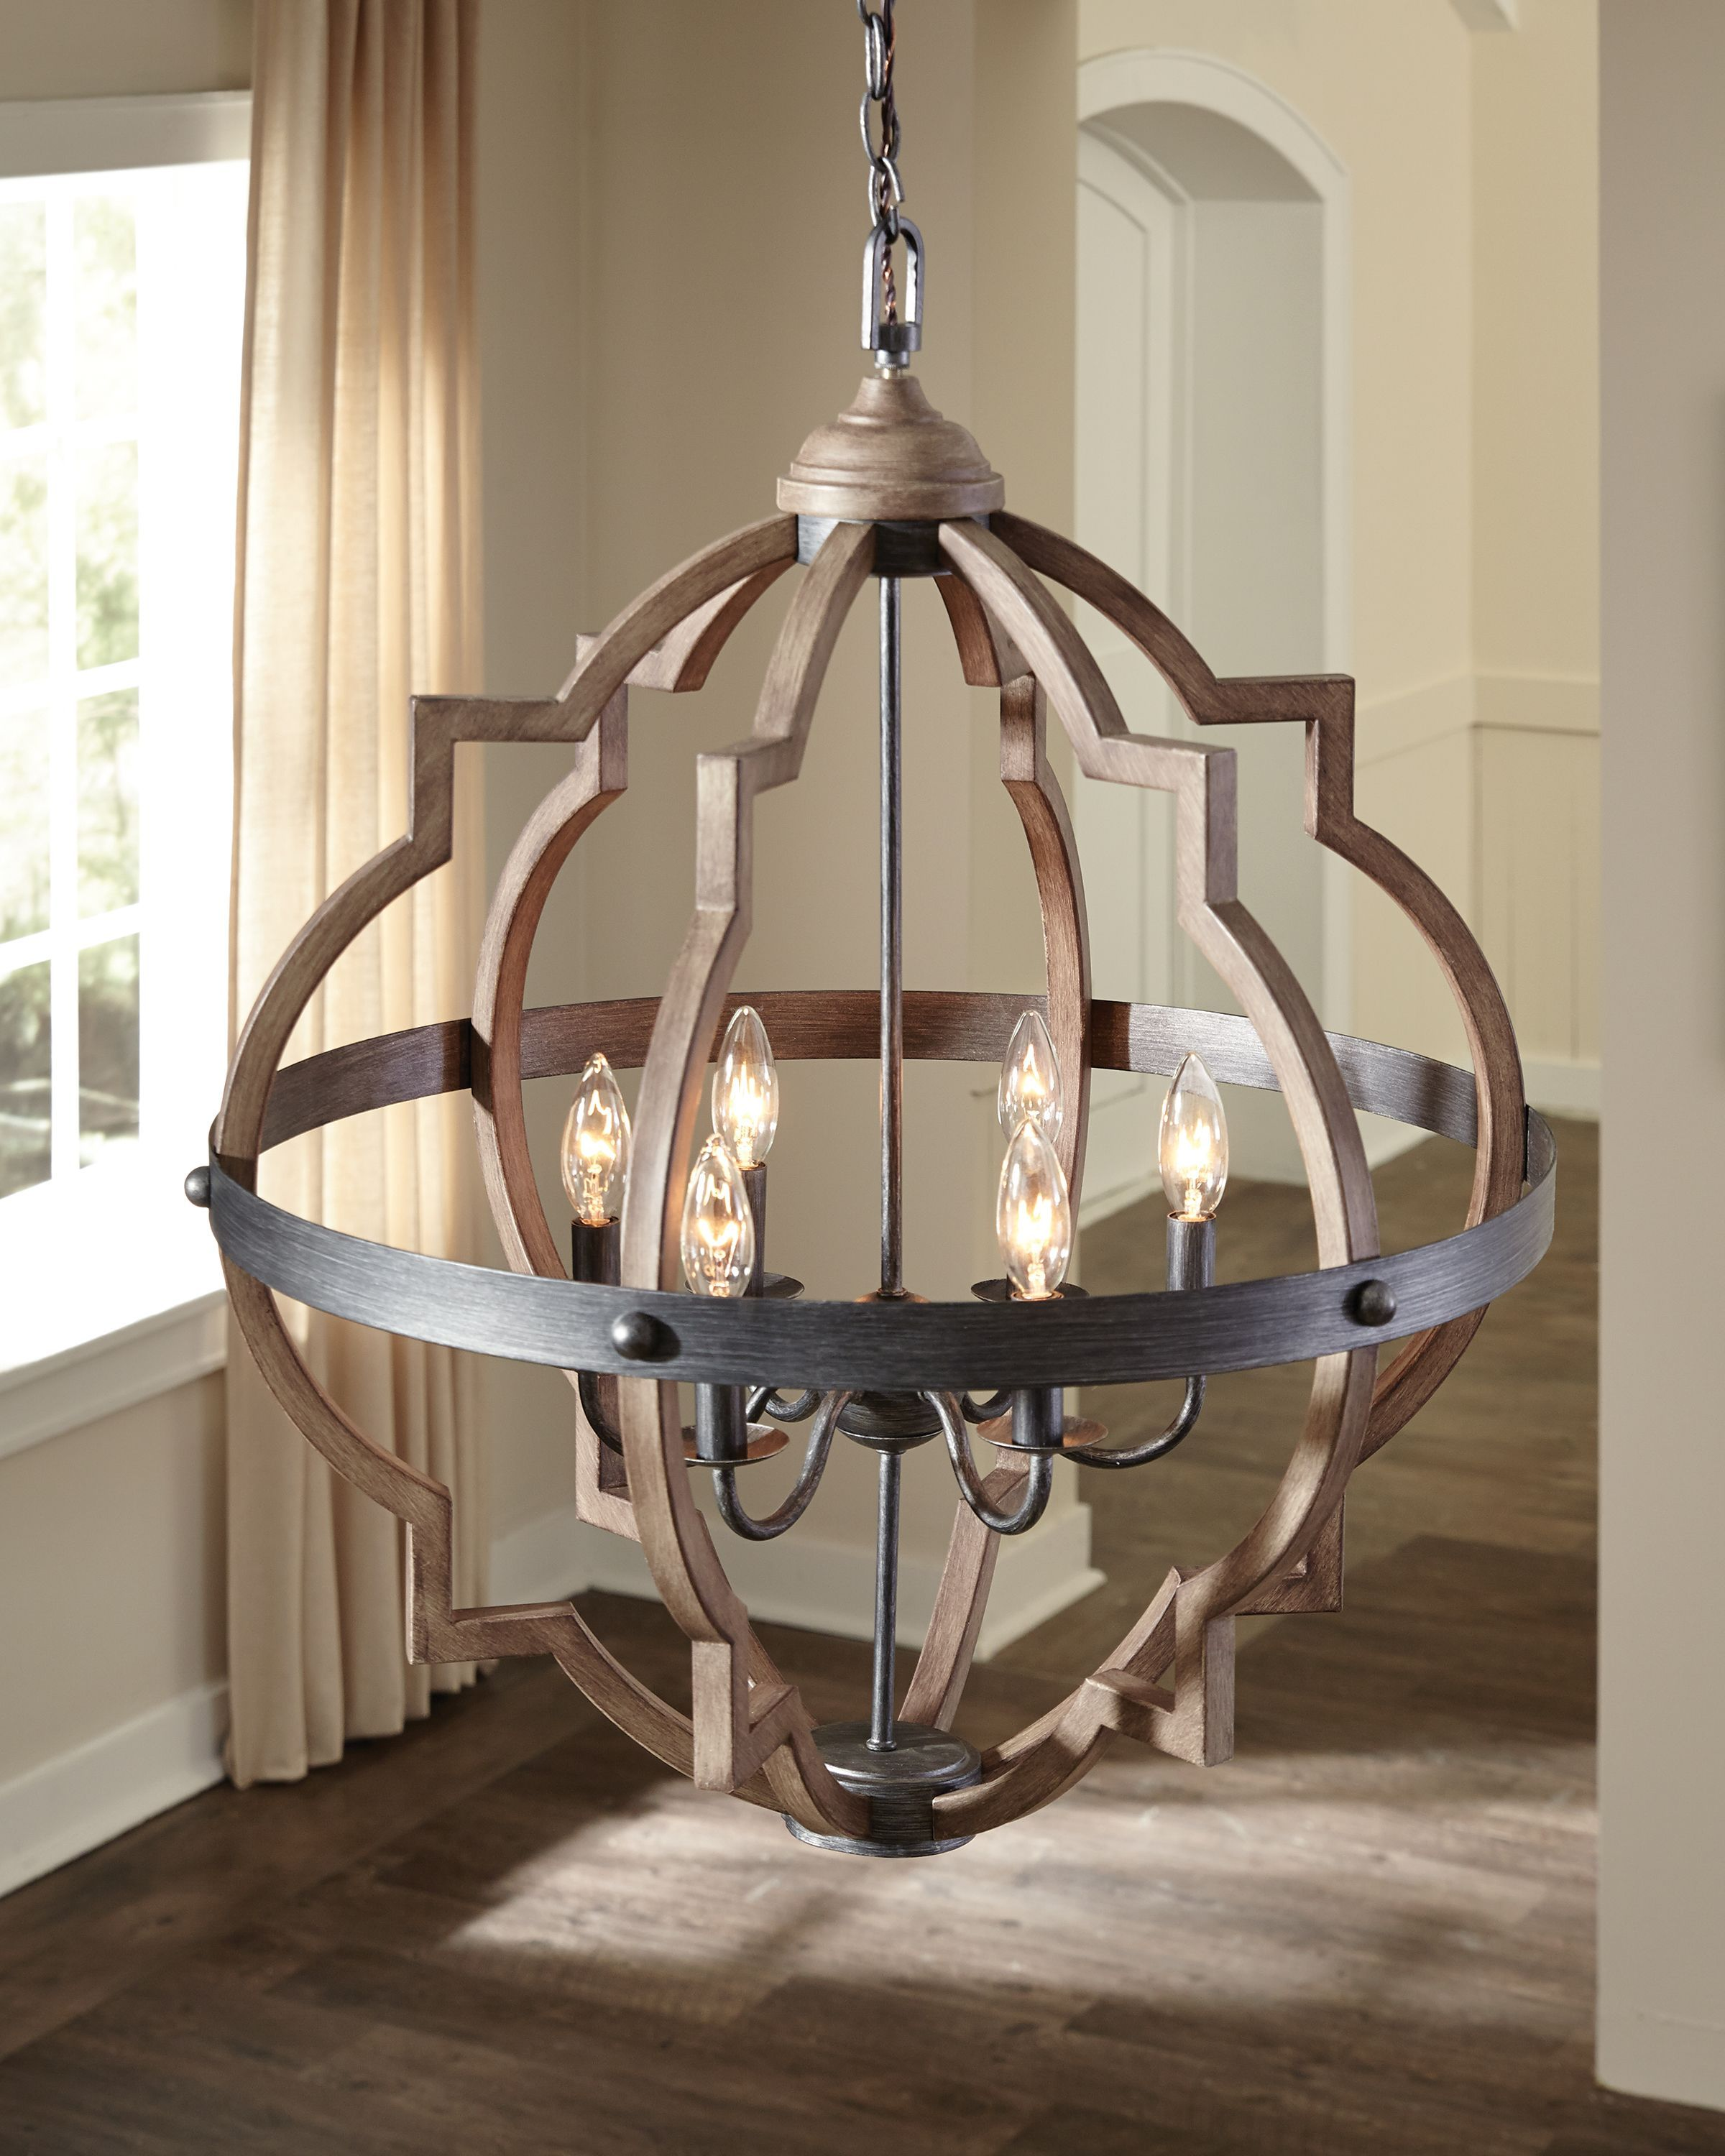 The transitional Socorro lighting collection by Sea